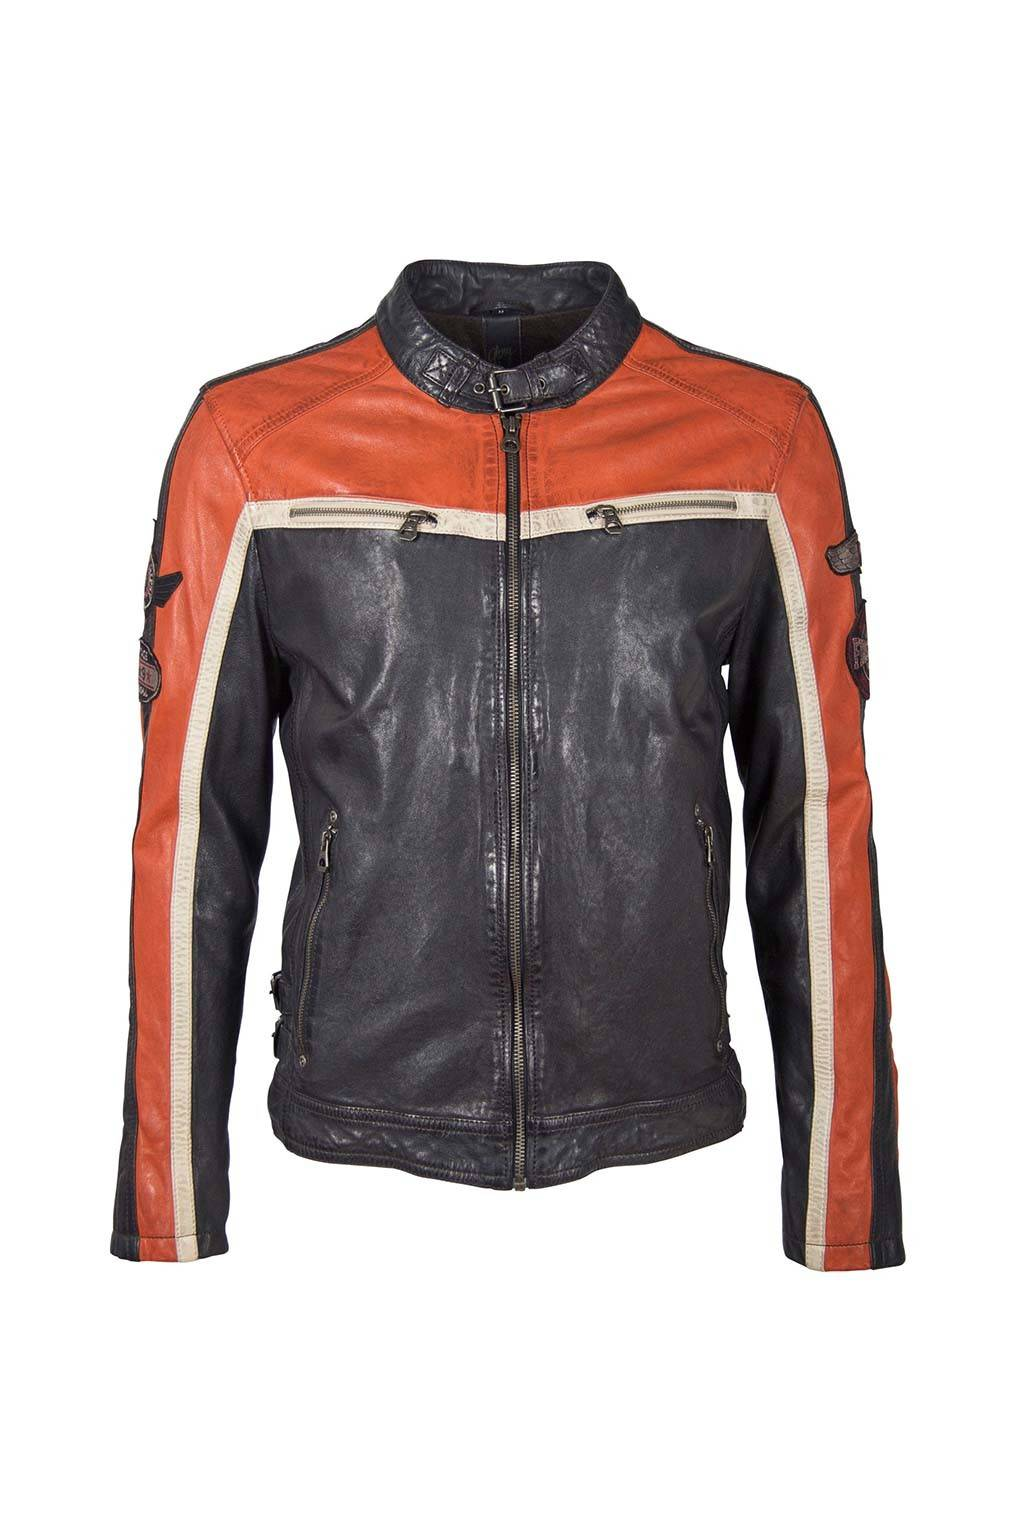 Gipsy myles lacav navy orange jacket